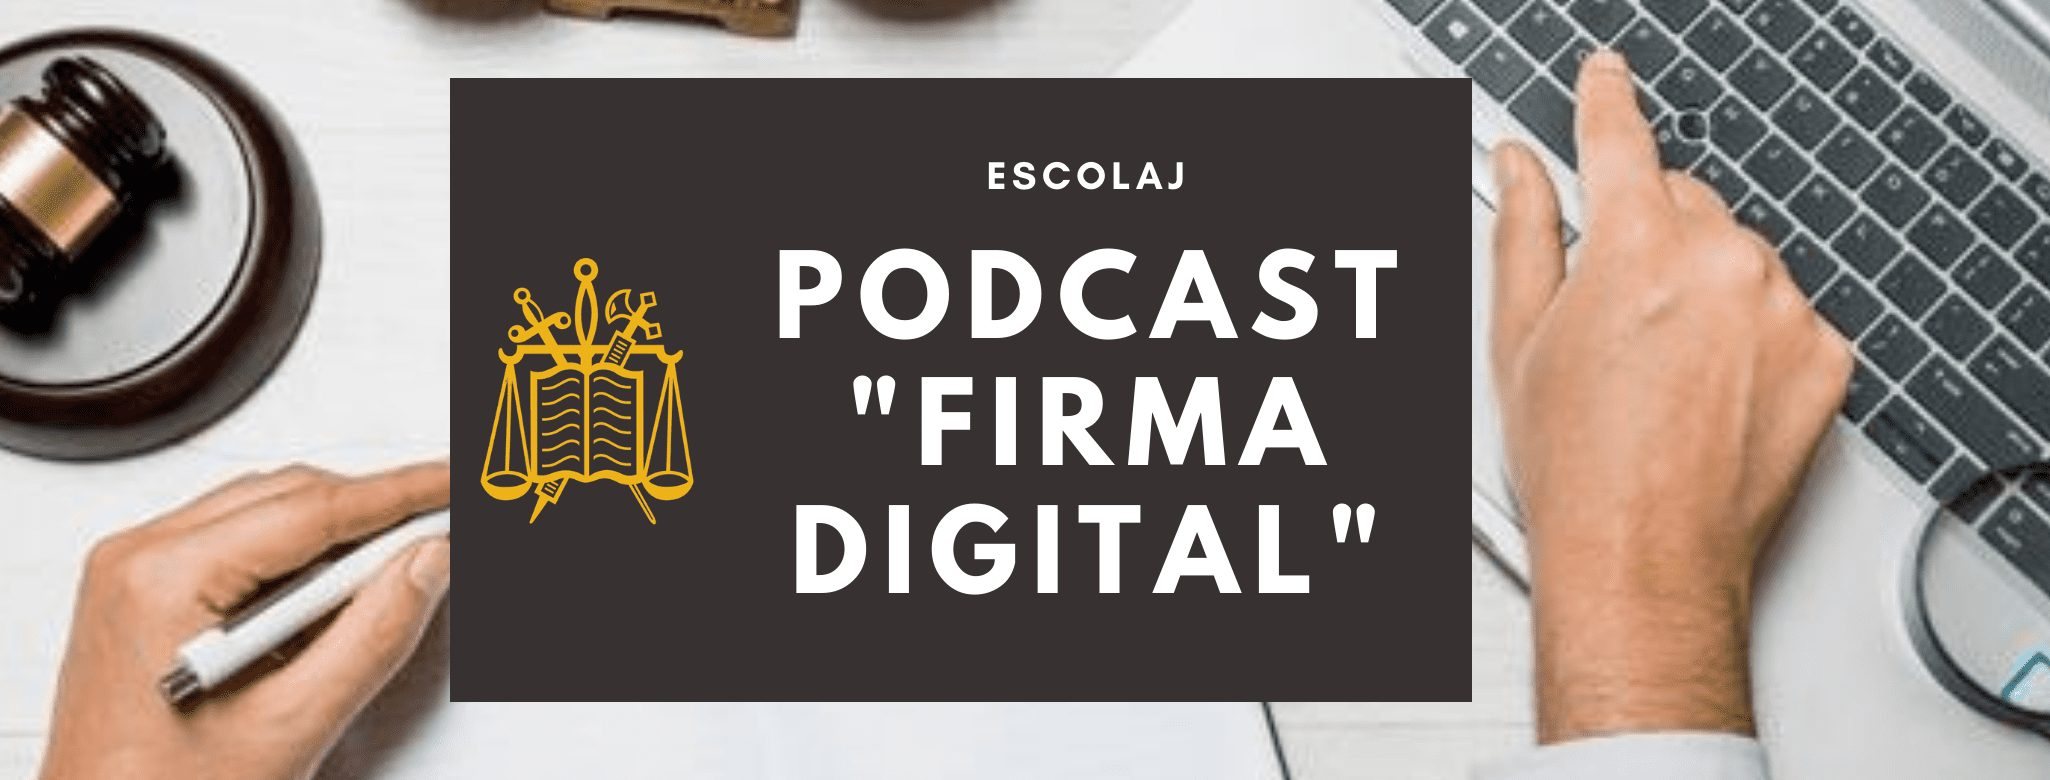 ESCOLAJ PODCAST FIRMA DIGITAL